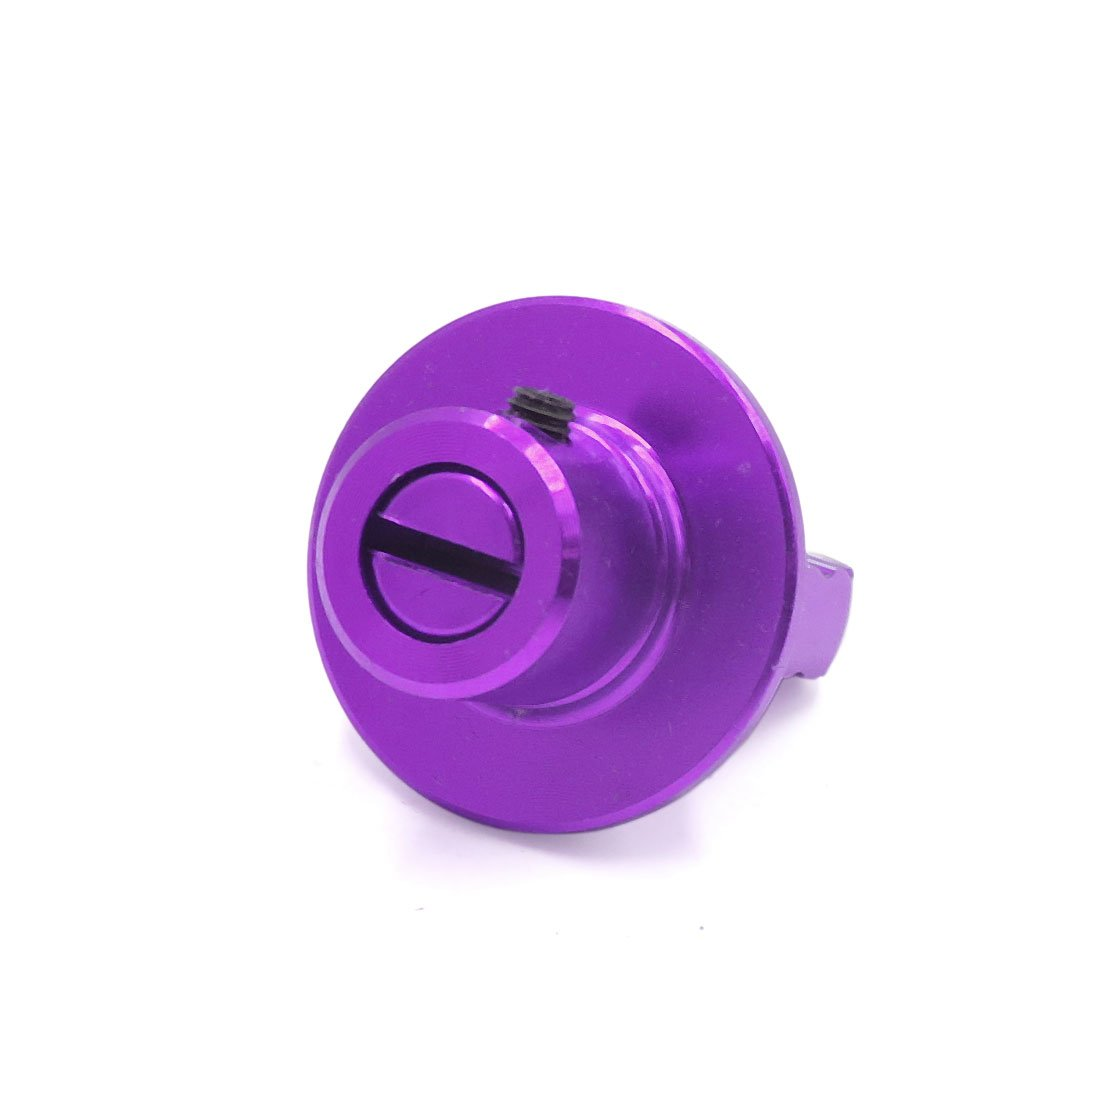 uxcell Aluminum Alloy Keychain Key Head Cover Purple for Motorcycle Scooter